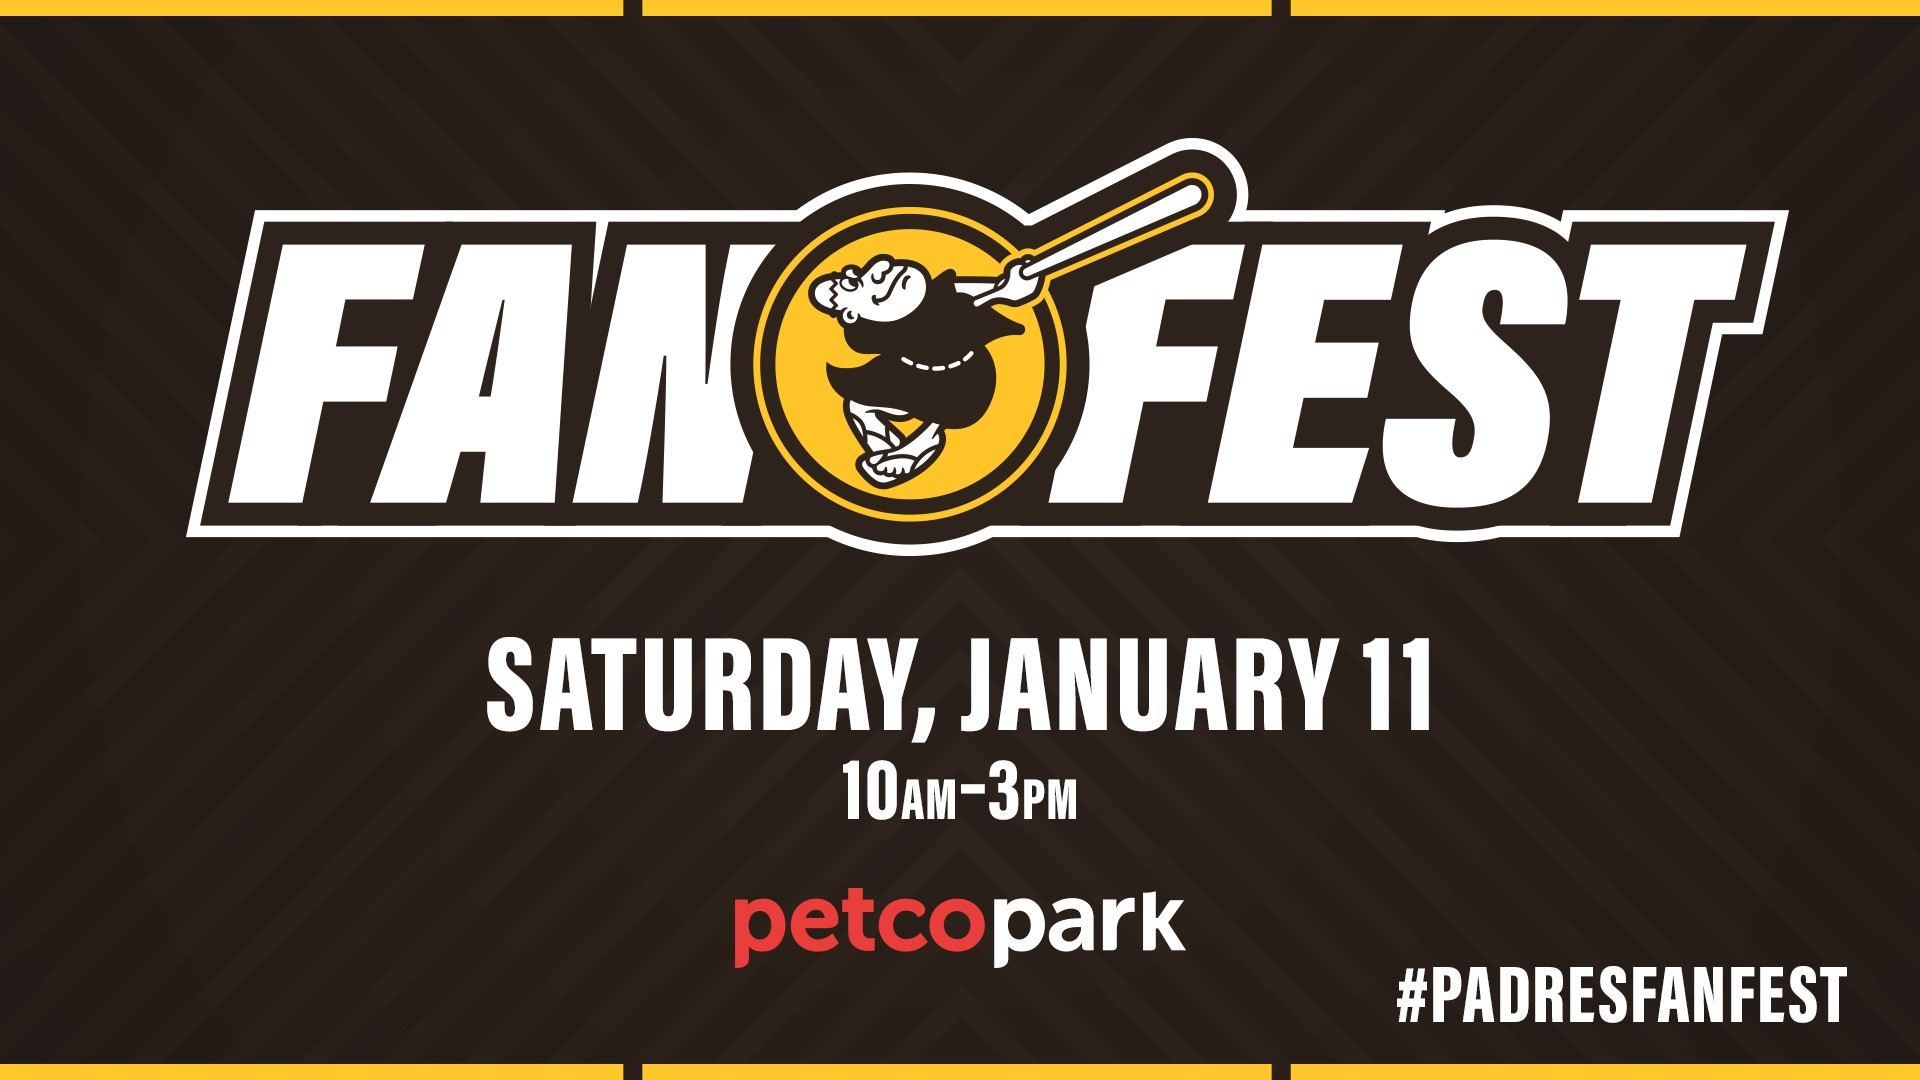 Home Run Derby 2020 Date.Save The Date 2020 Padres Fanfest At Petco Park Friarwire